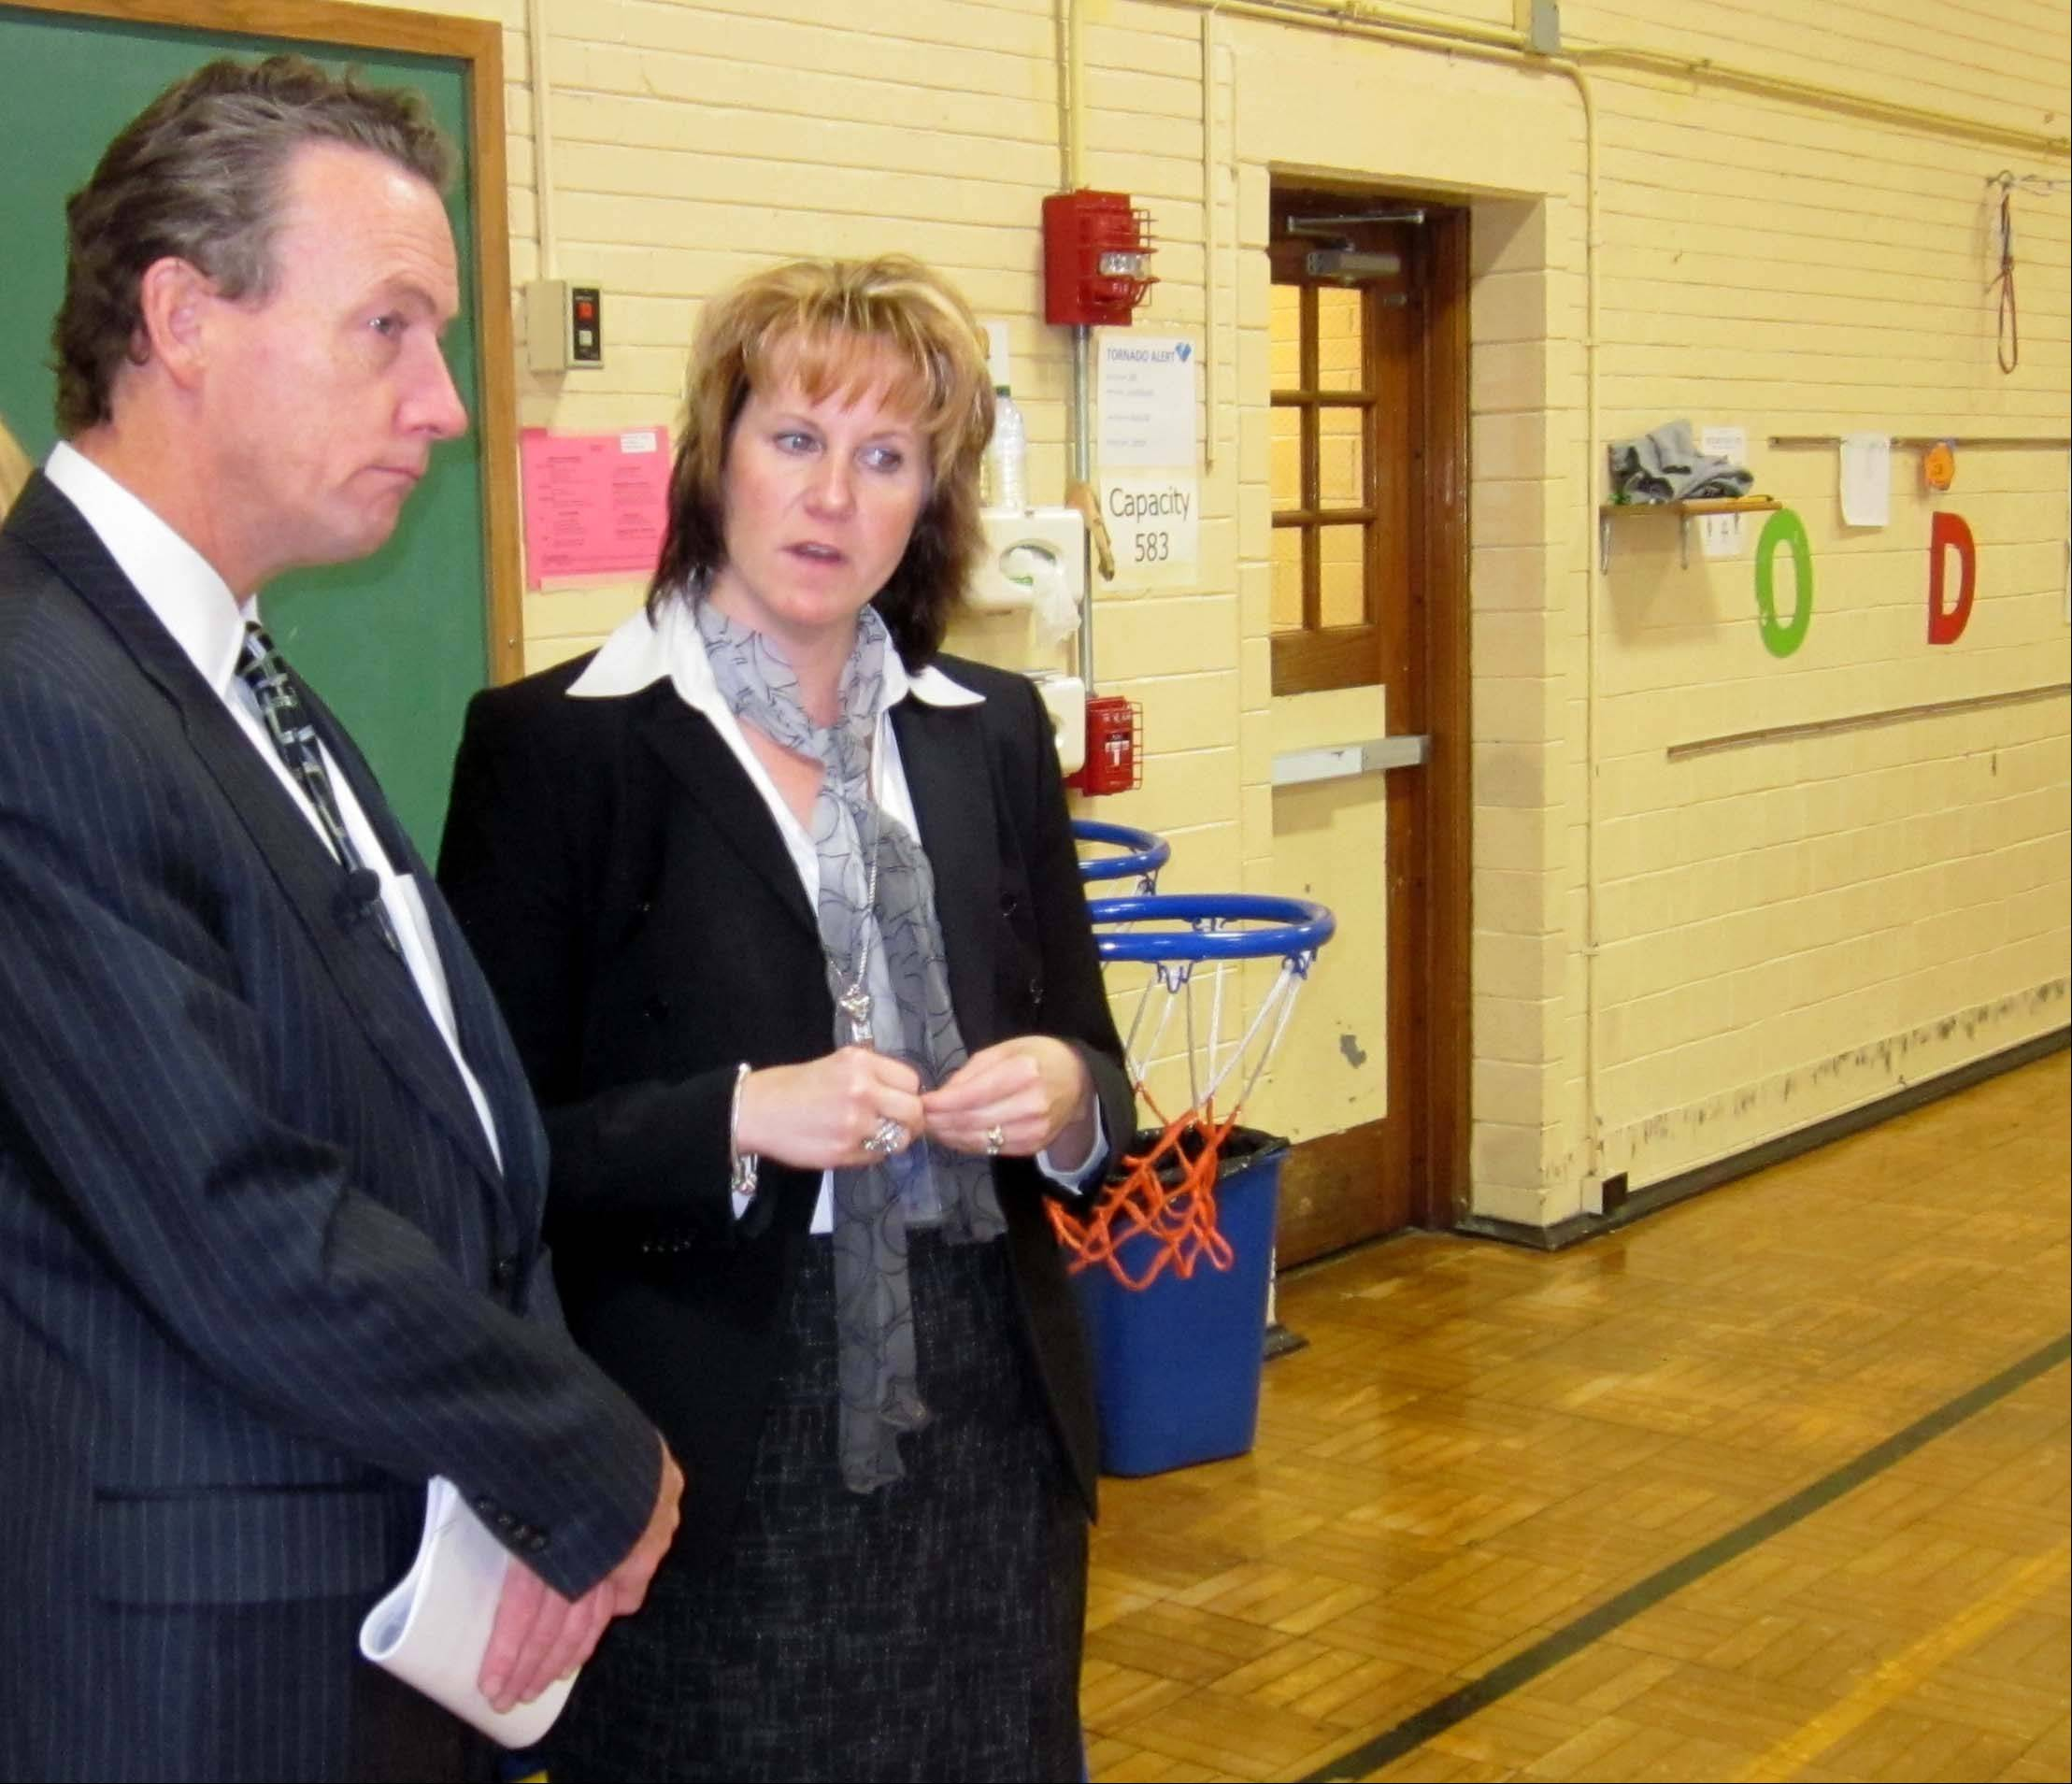 Peter Cunningham, U.S. $START_URL$Department of Education ;http://www.education.gov$STOP_URL$assistant secretary, discusses early learning standards with Todd Early Learning Center Principal Laurie Klomhaus, during a Tuesday visit.